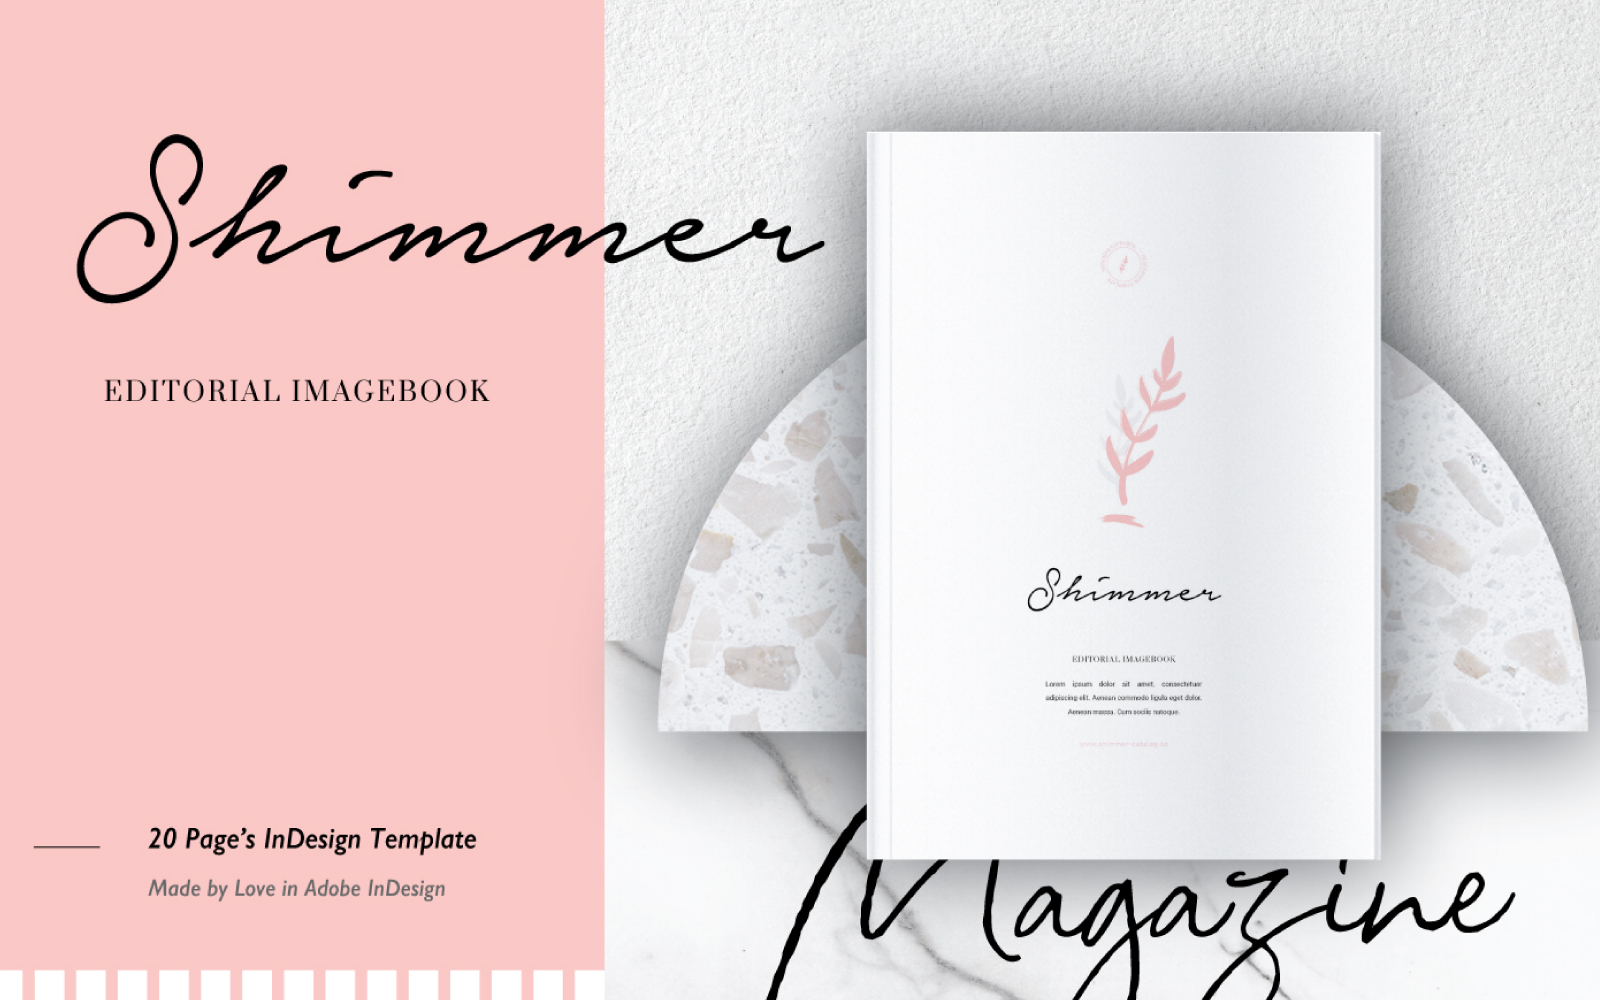 HIMMER EDITORIAL IMAGEBOOK Magazine Template